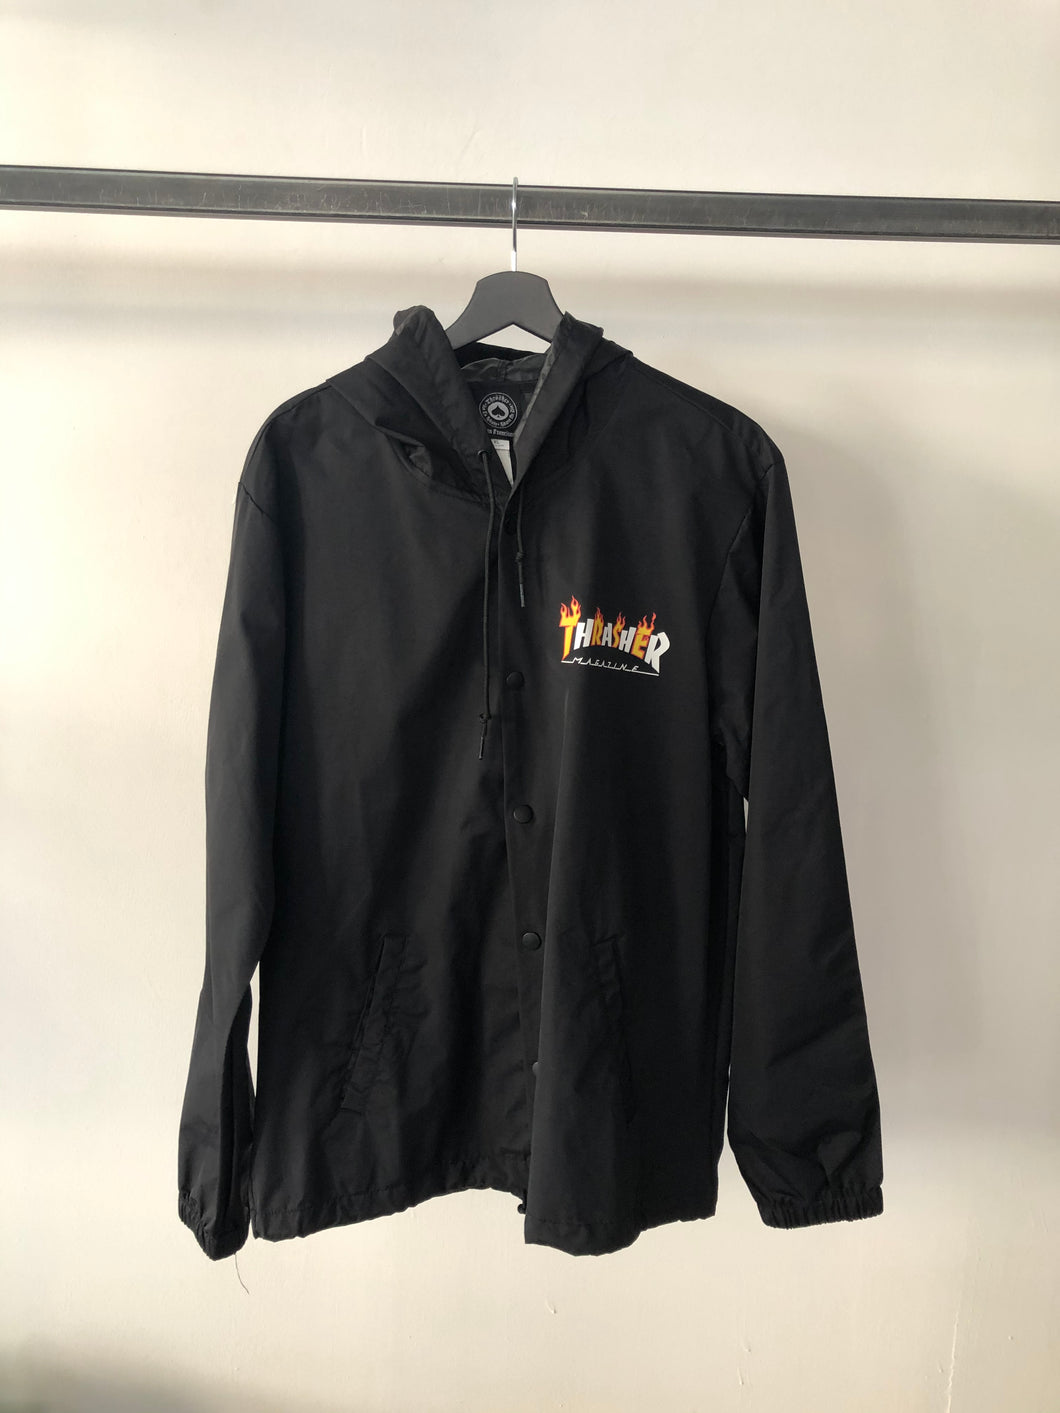 Thrasher Magazine - Jacket Black Logo